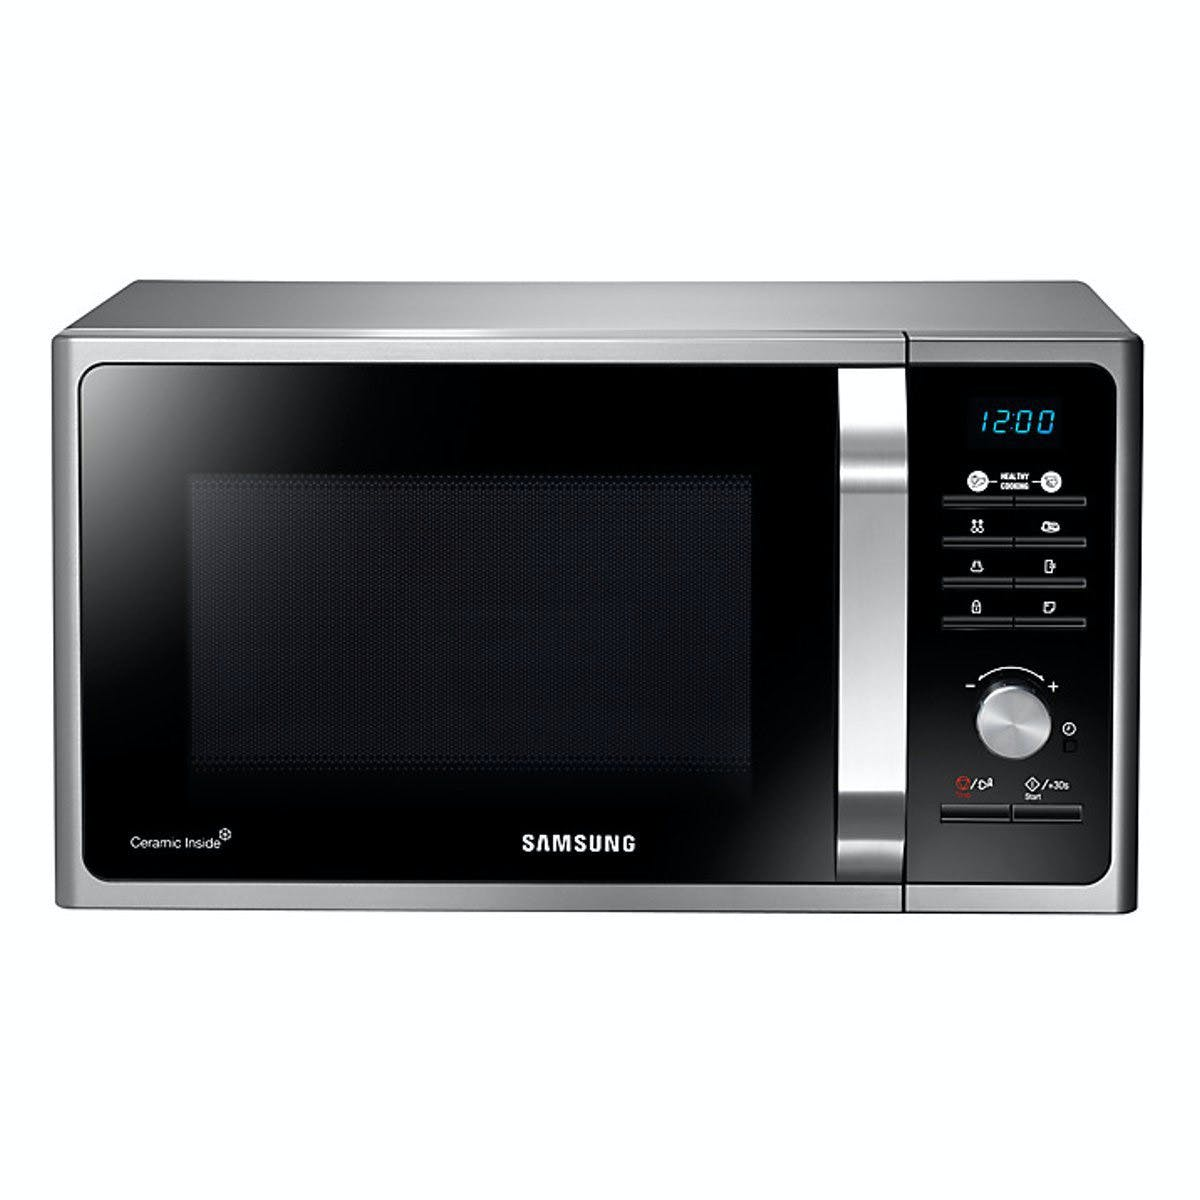 samsung ms23f301tas compact microwave oven in silver tact 23l 800w